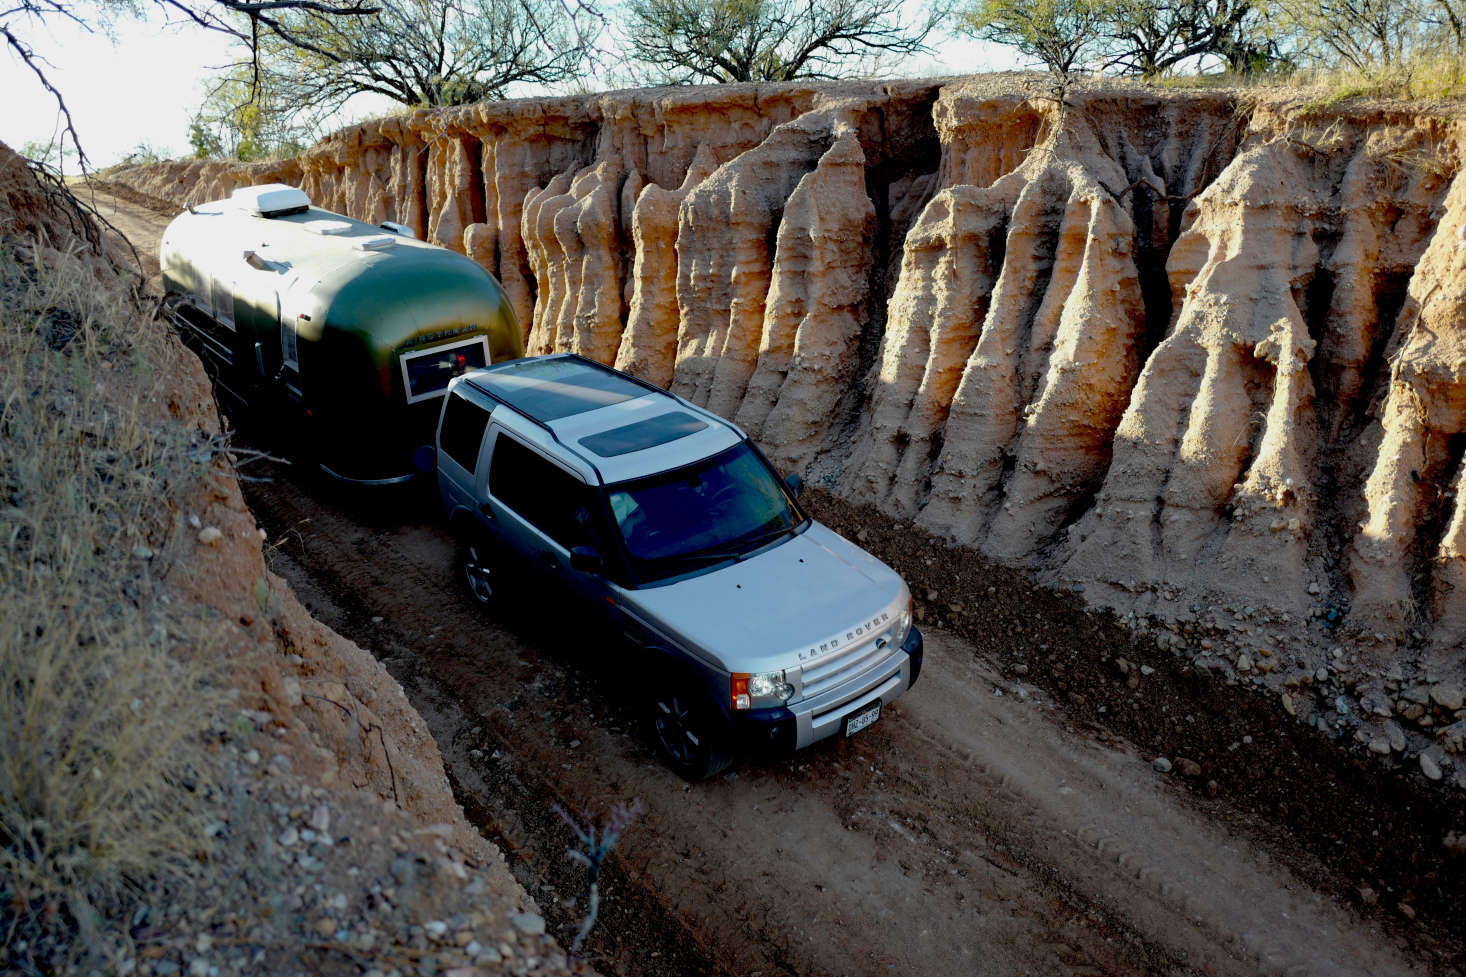 A dramatic eroded gully leads to the Casamidy ranch. The family drives a Land Rover Discovery 3 V-8 that provides crucial extra storage space for on-the-road living.